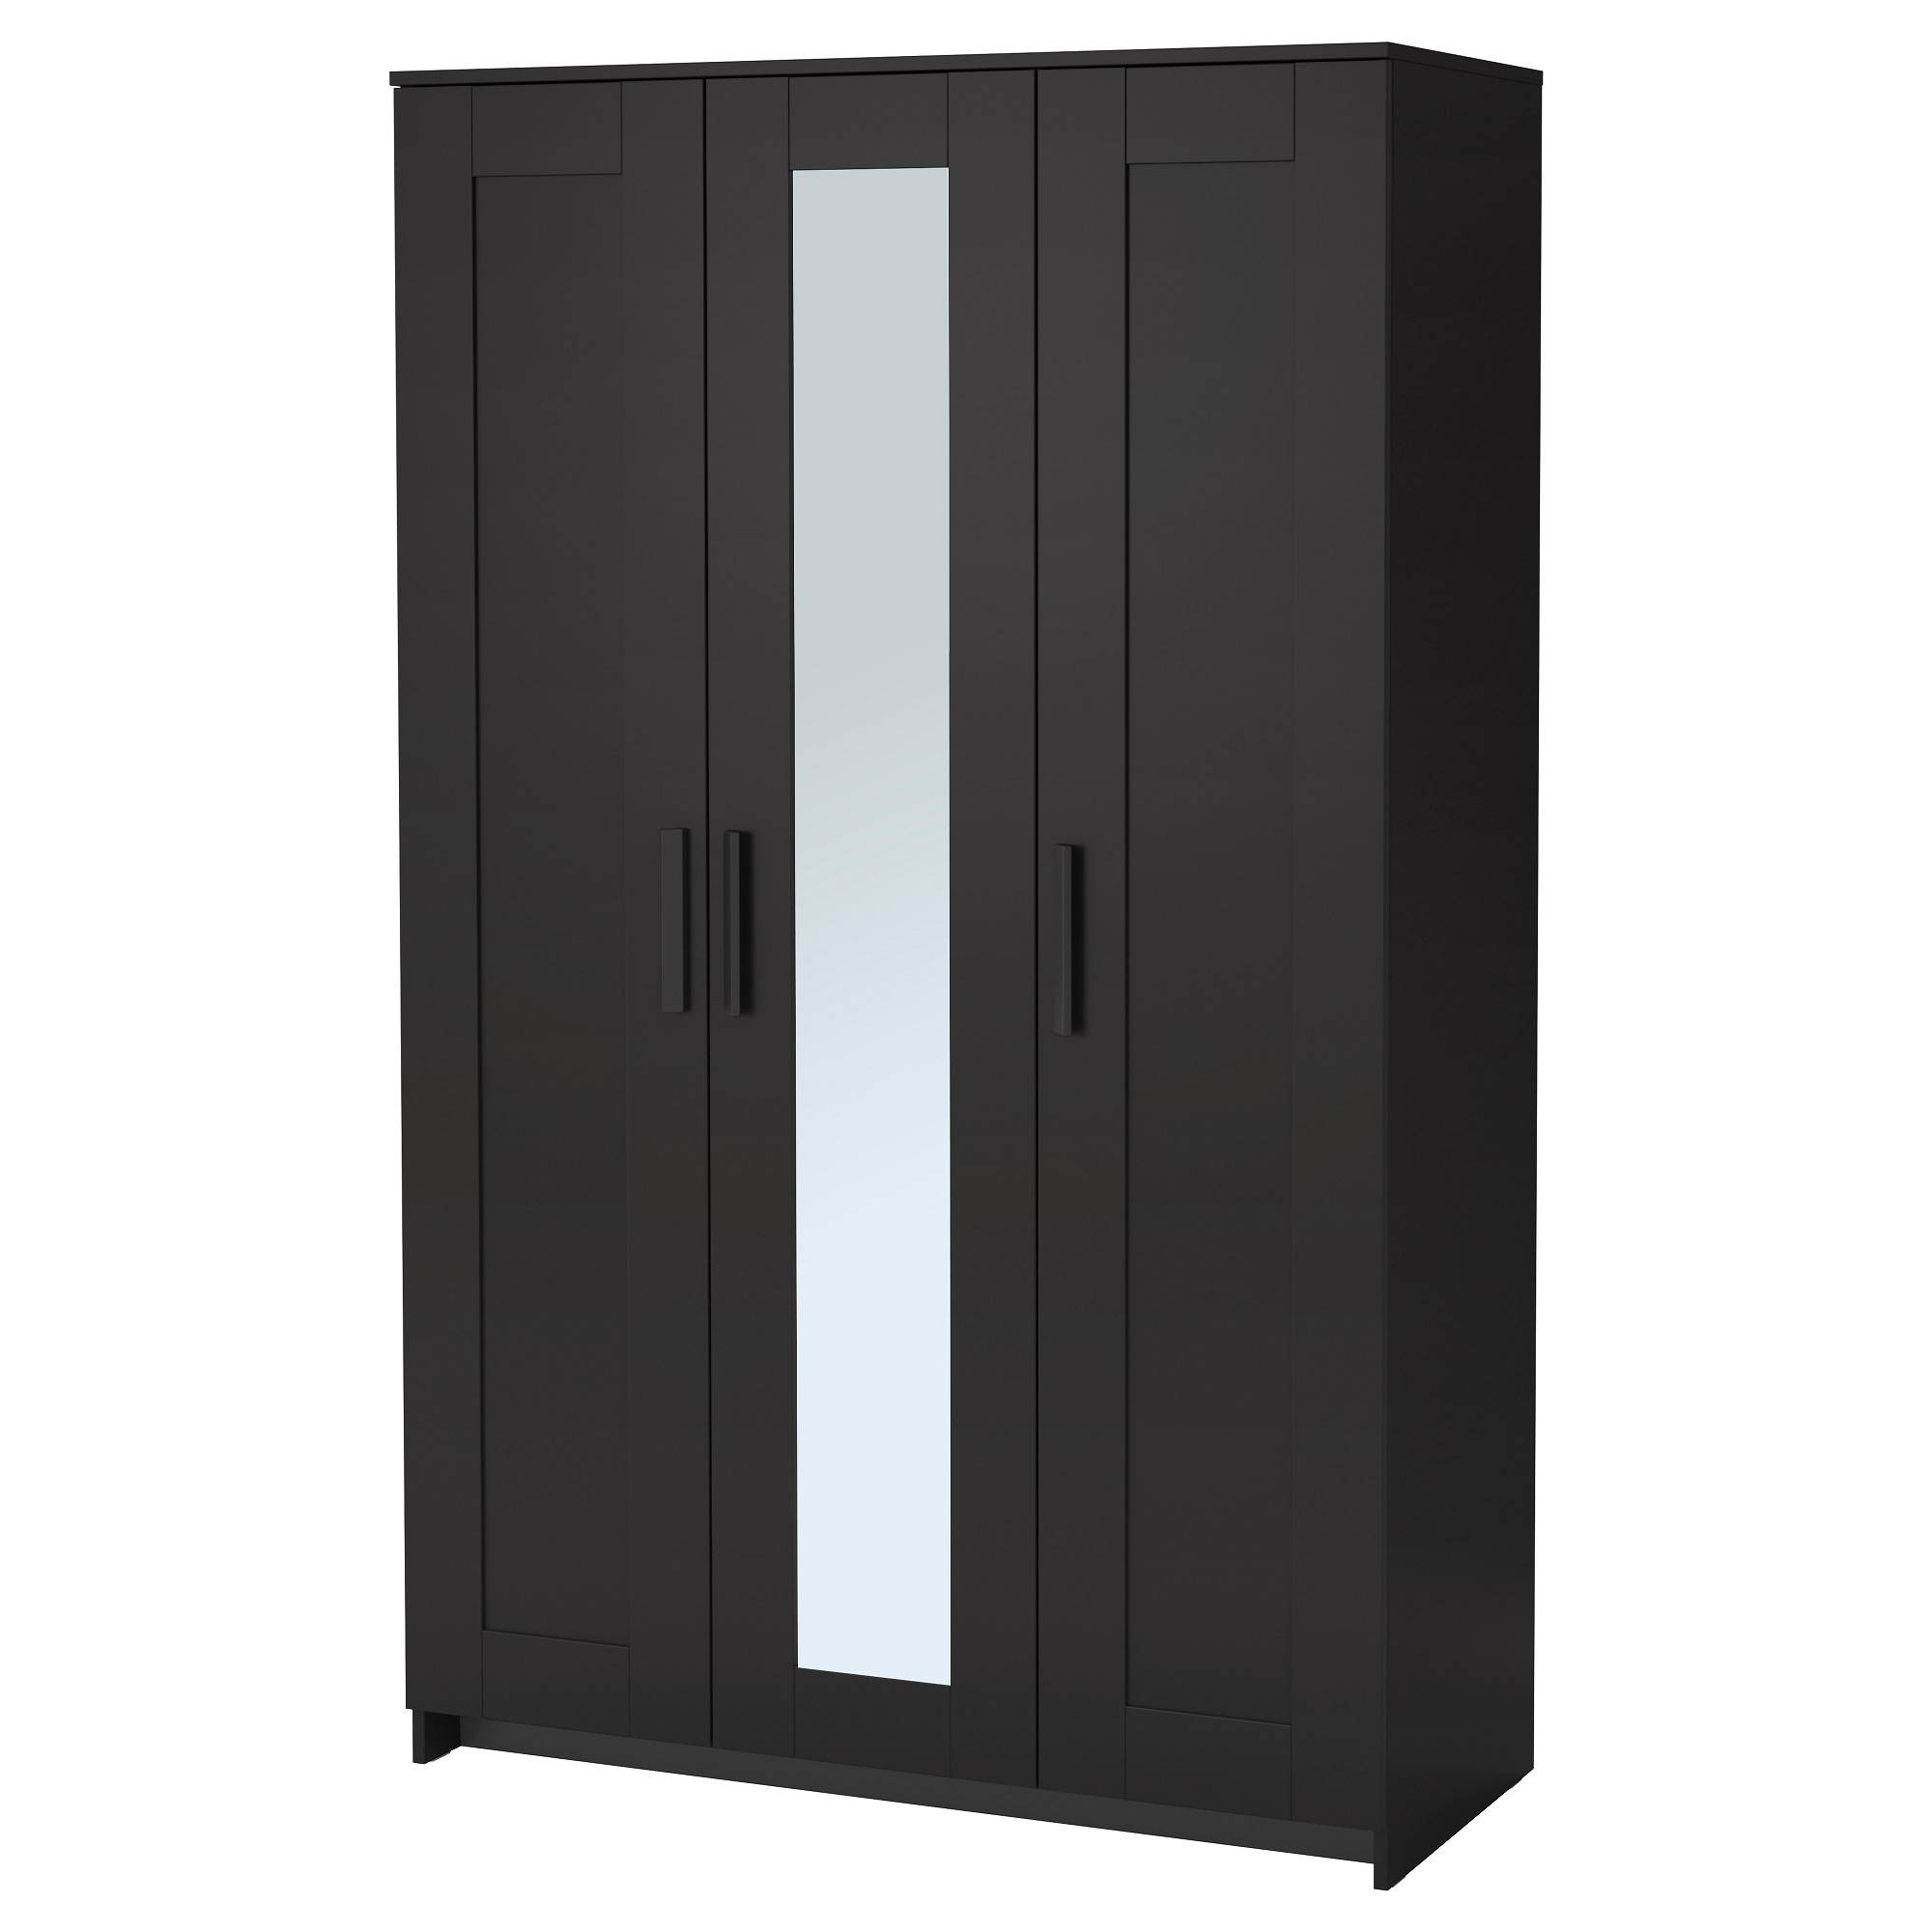 Wardrobes, Armoires & Closets - Ikea with Cheap Black Wardrobes (Image 14 of 15)